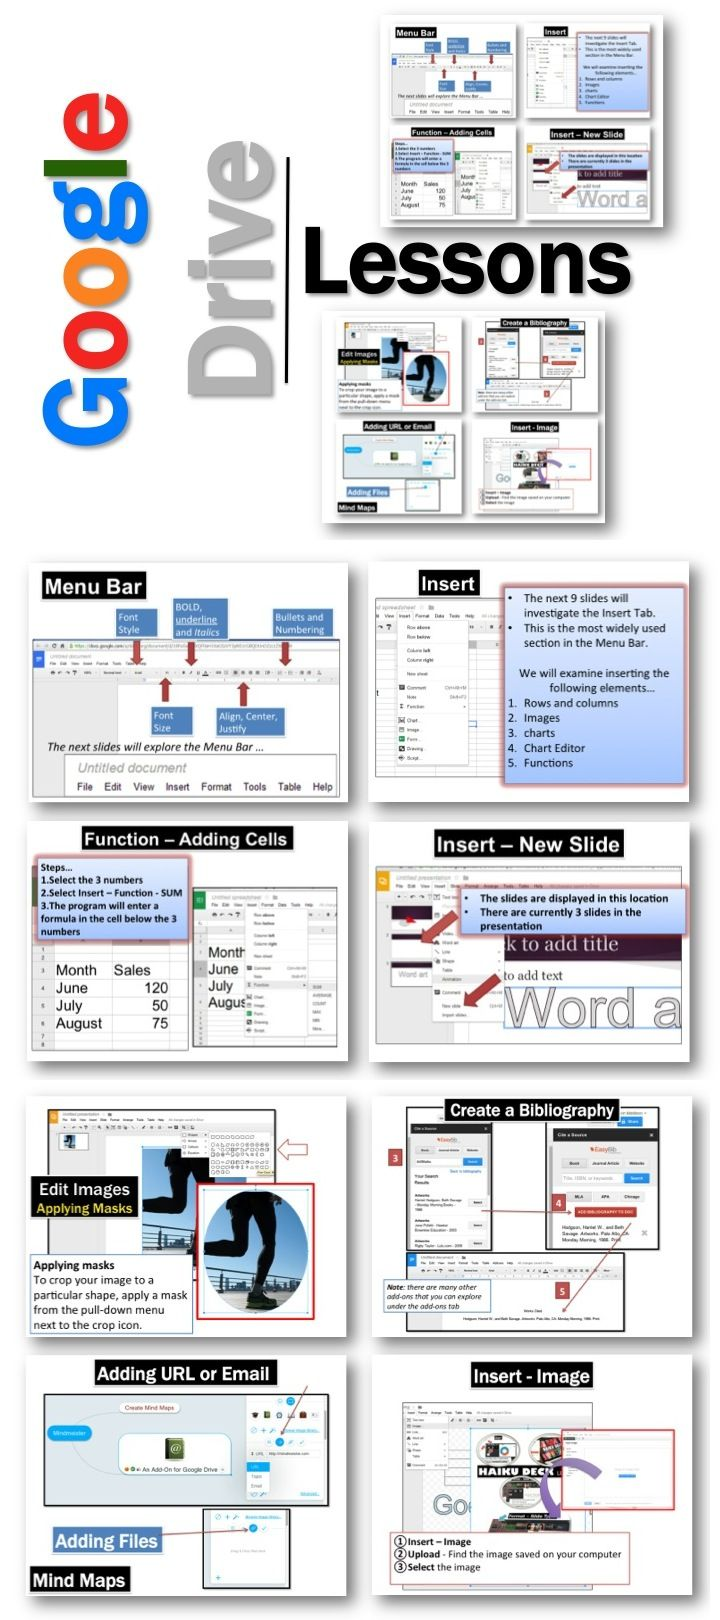 •These lessons contains screen shots, activities, marking schemes, tips and instructions for using Documents, Presentations, Spreadsheets, Drawings and Forms within Google Drive.  Update: Lessons for the new Google Add-ons and Updates 2014 have been added.